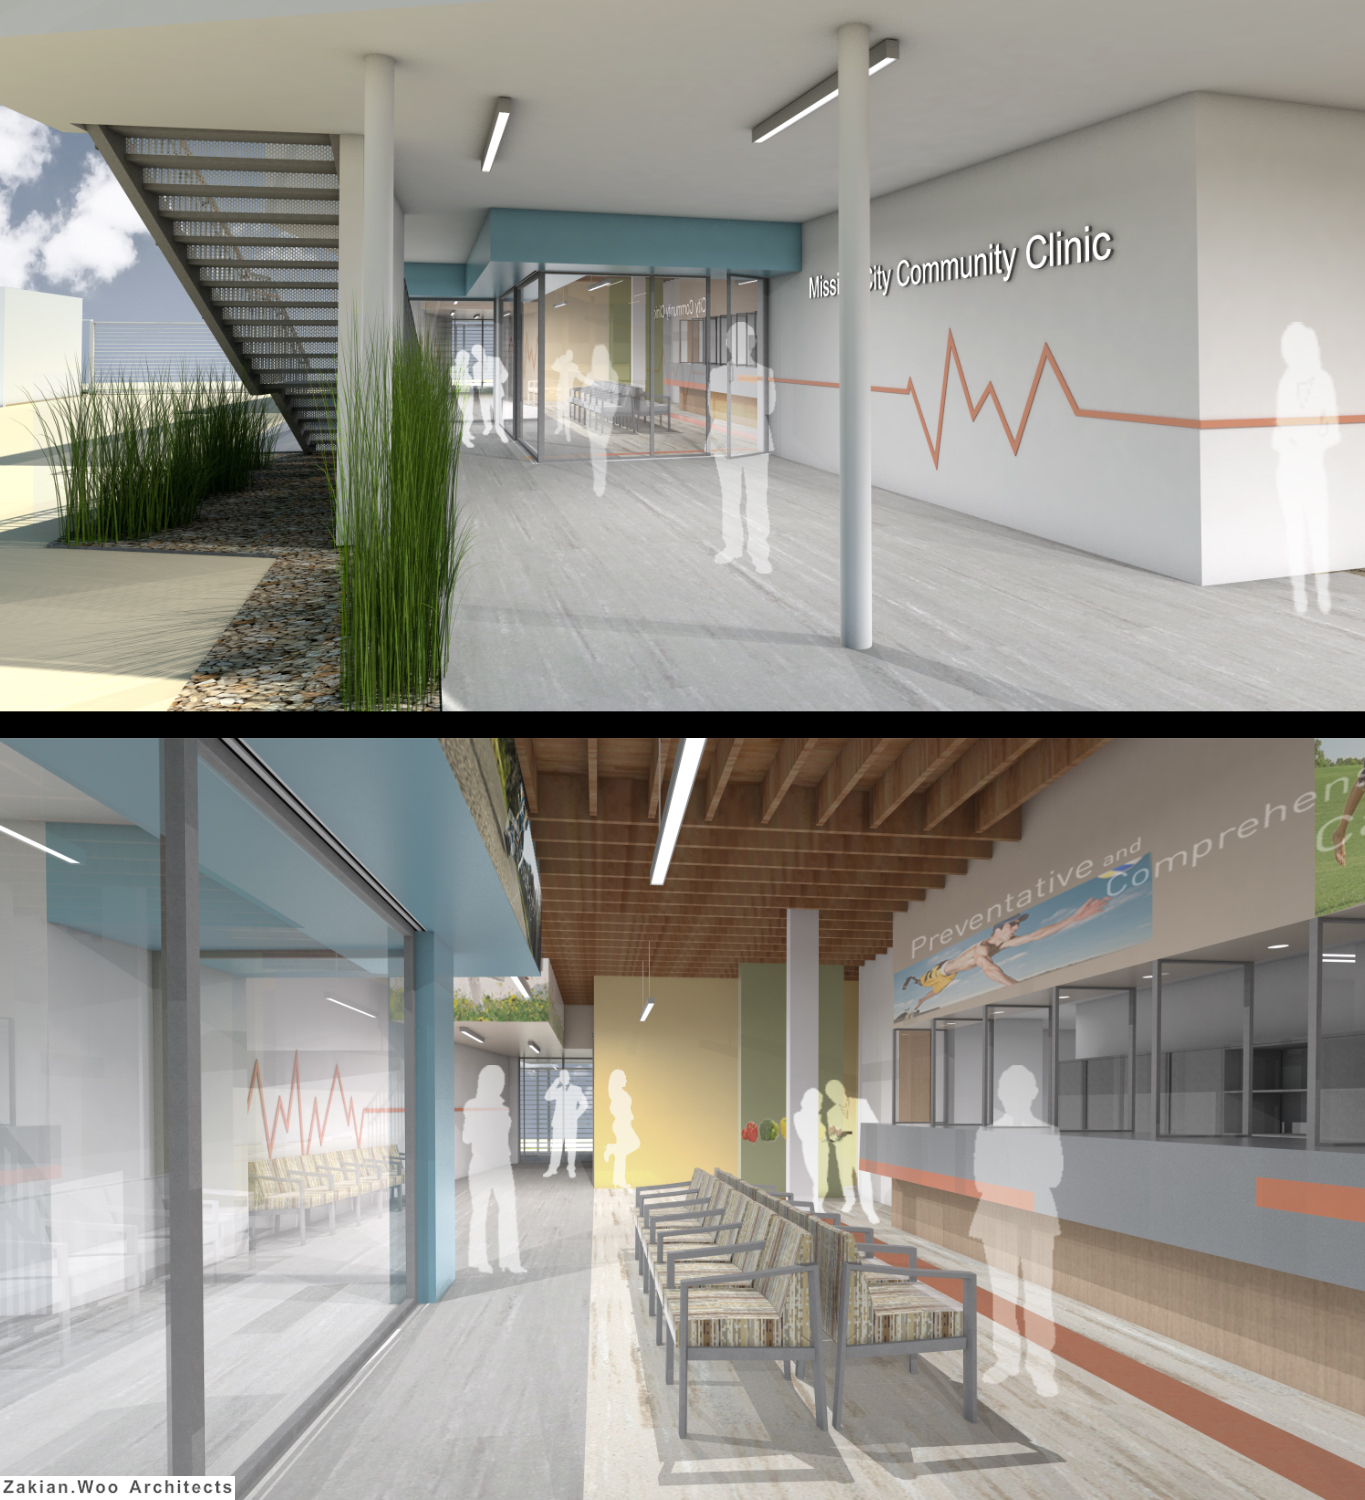 Mission City Community Network / Community Clinic / Los Angeles, CA